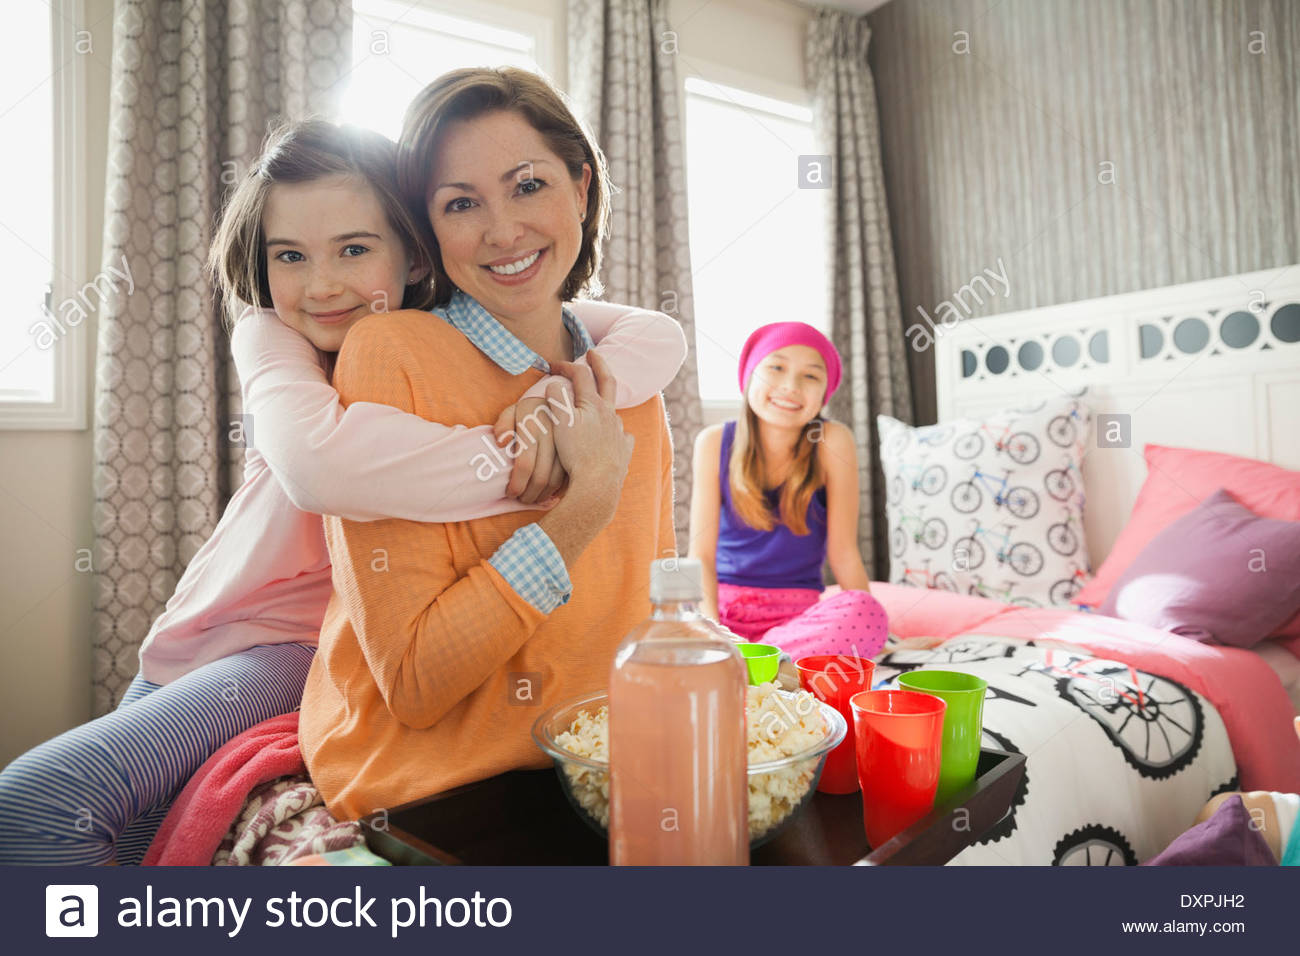 Portrait of daughter embracing mother at slumber party - Stock Image